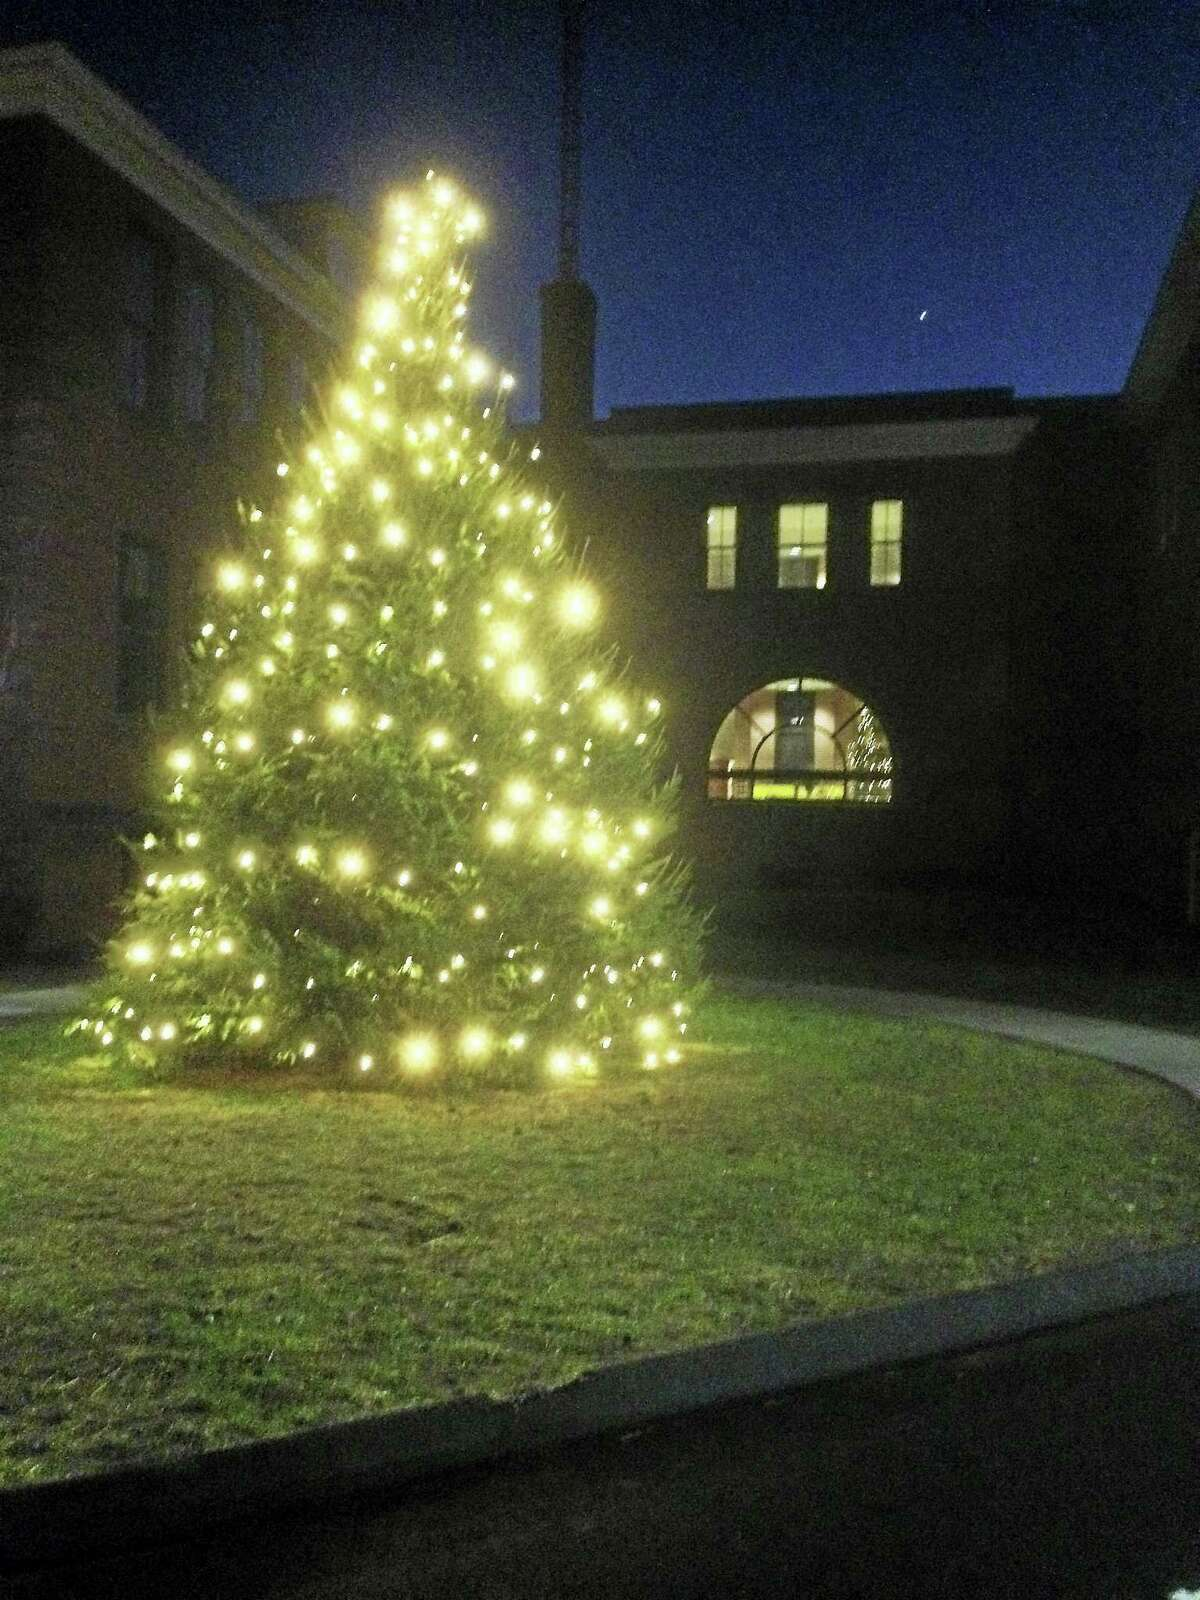 Now lit up, Cromwell's holiday tree gives off a welcoming glow for the Christmas season.